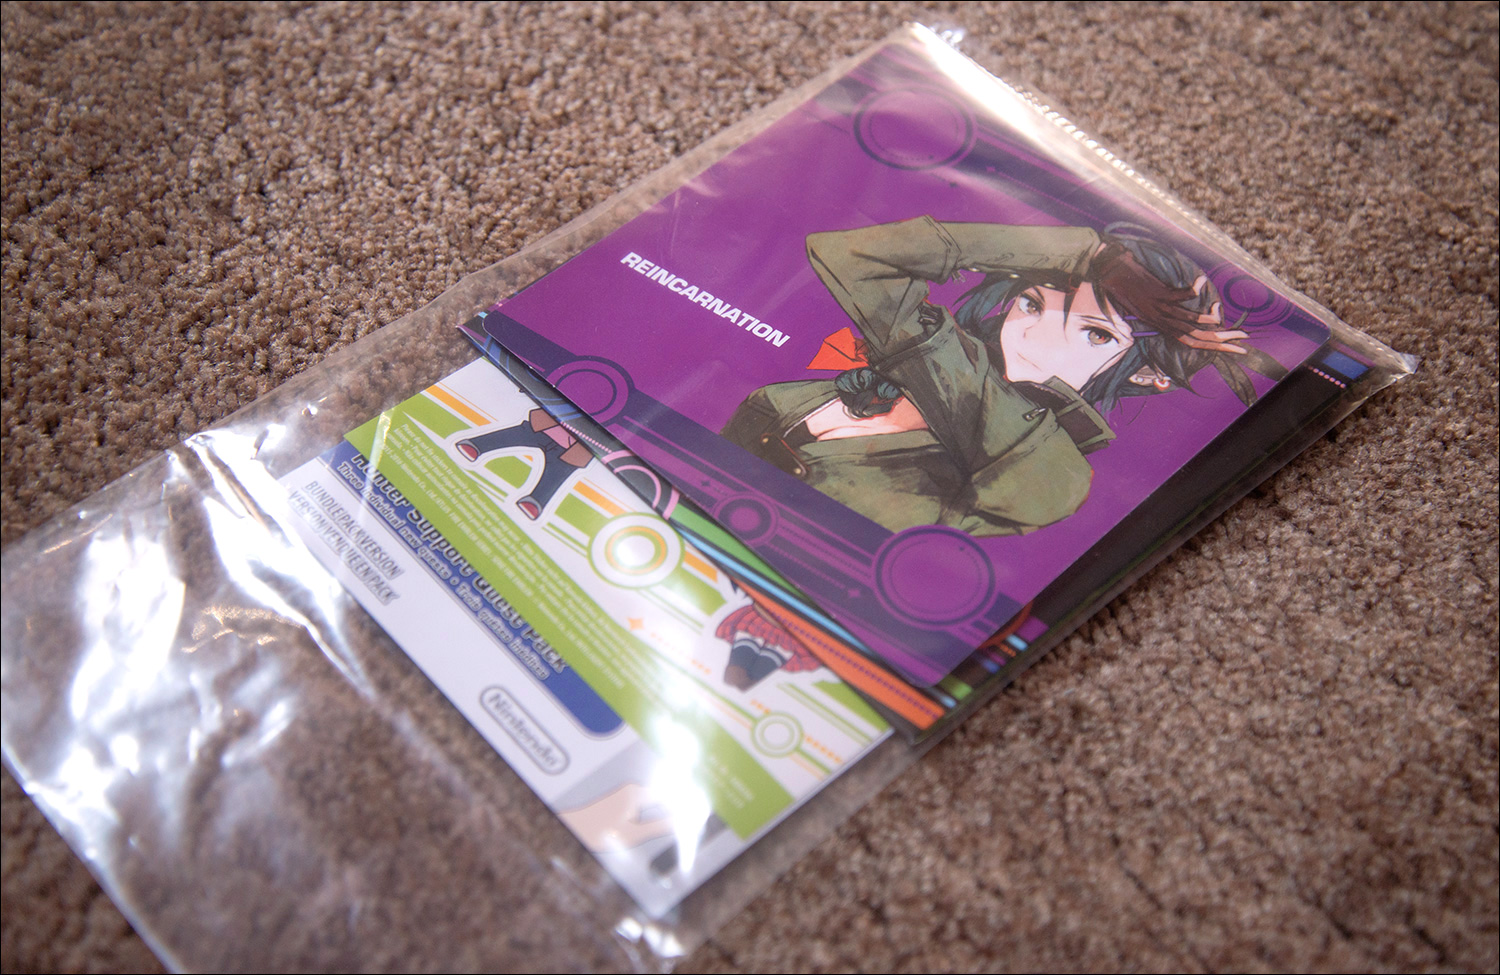 Tokyo-Mirage-Sessions-FE-Fortissimo-Edition-Bag